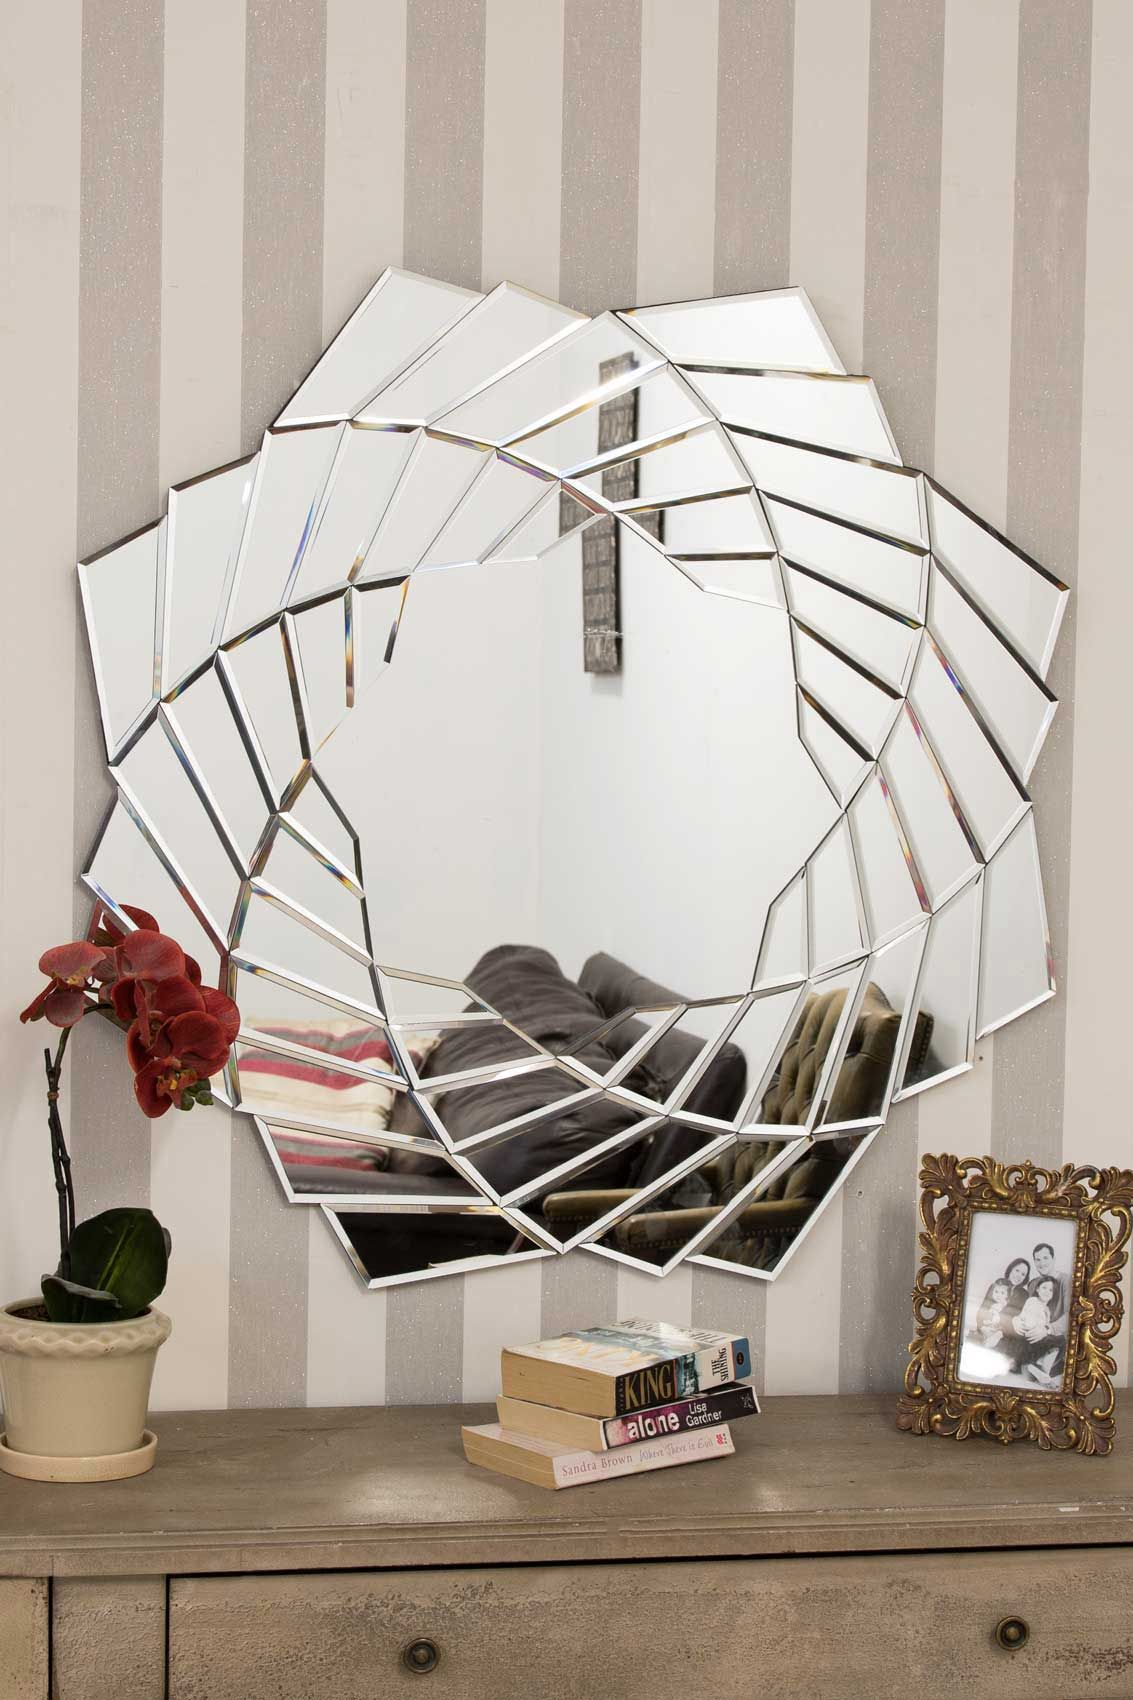 Henley Funky Round Mirror 90cm Features Multiple Bevelled Mirrored Sections Creating A Funky Round Mir In 2020 Mirror Design Wall Modern Mirror Wall Mirror Wall Decor